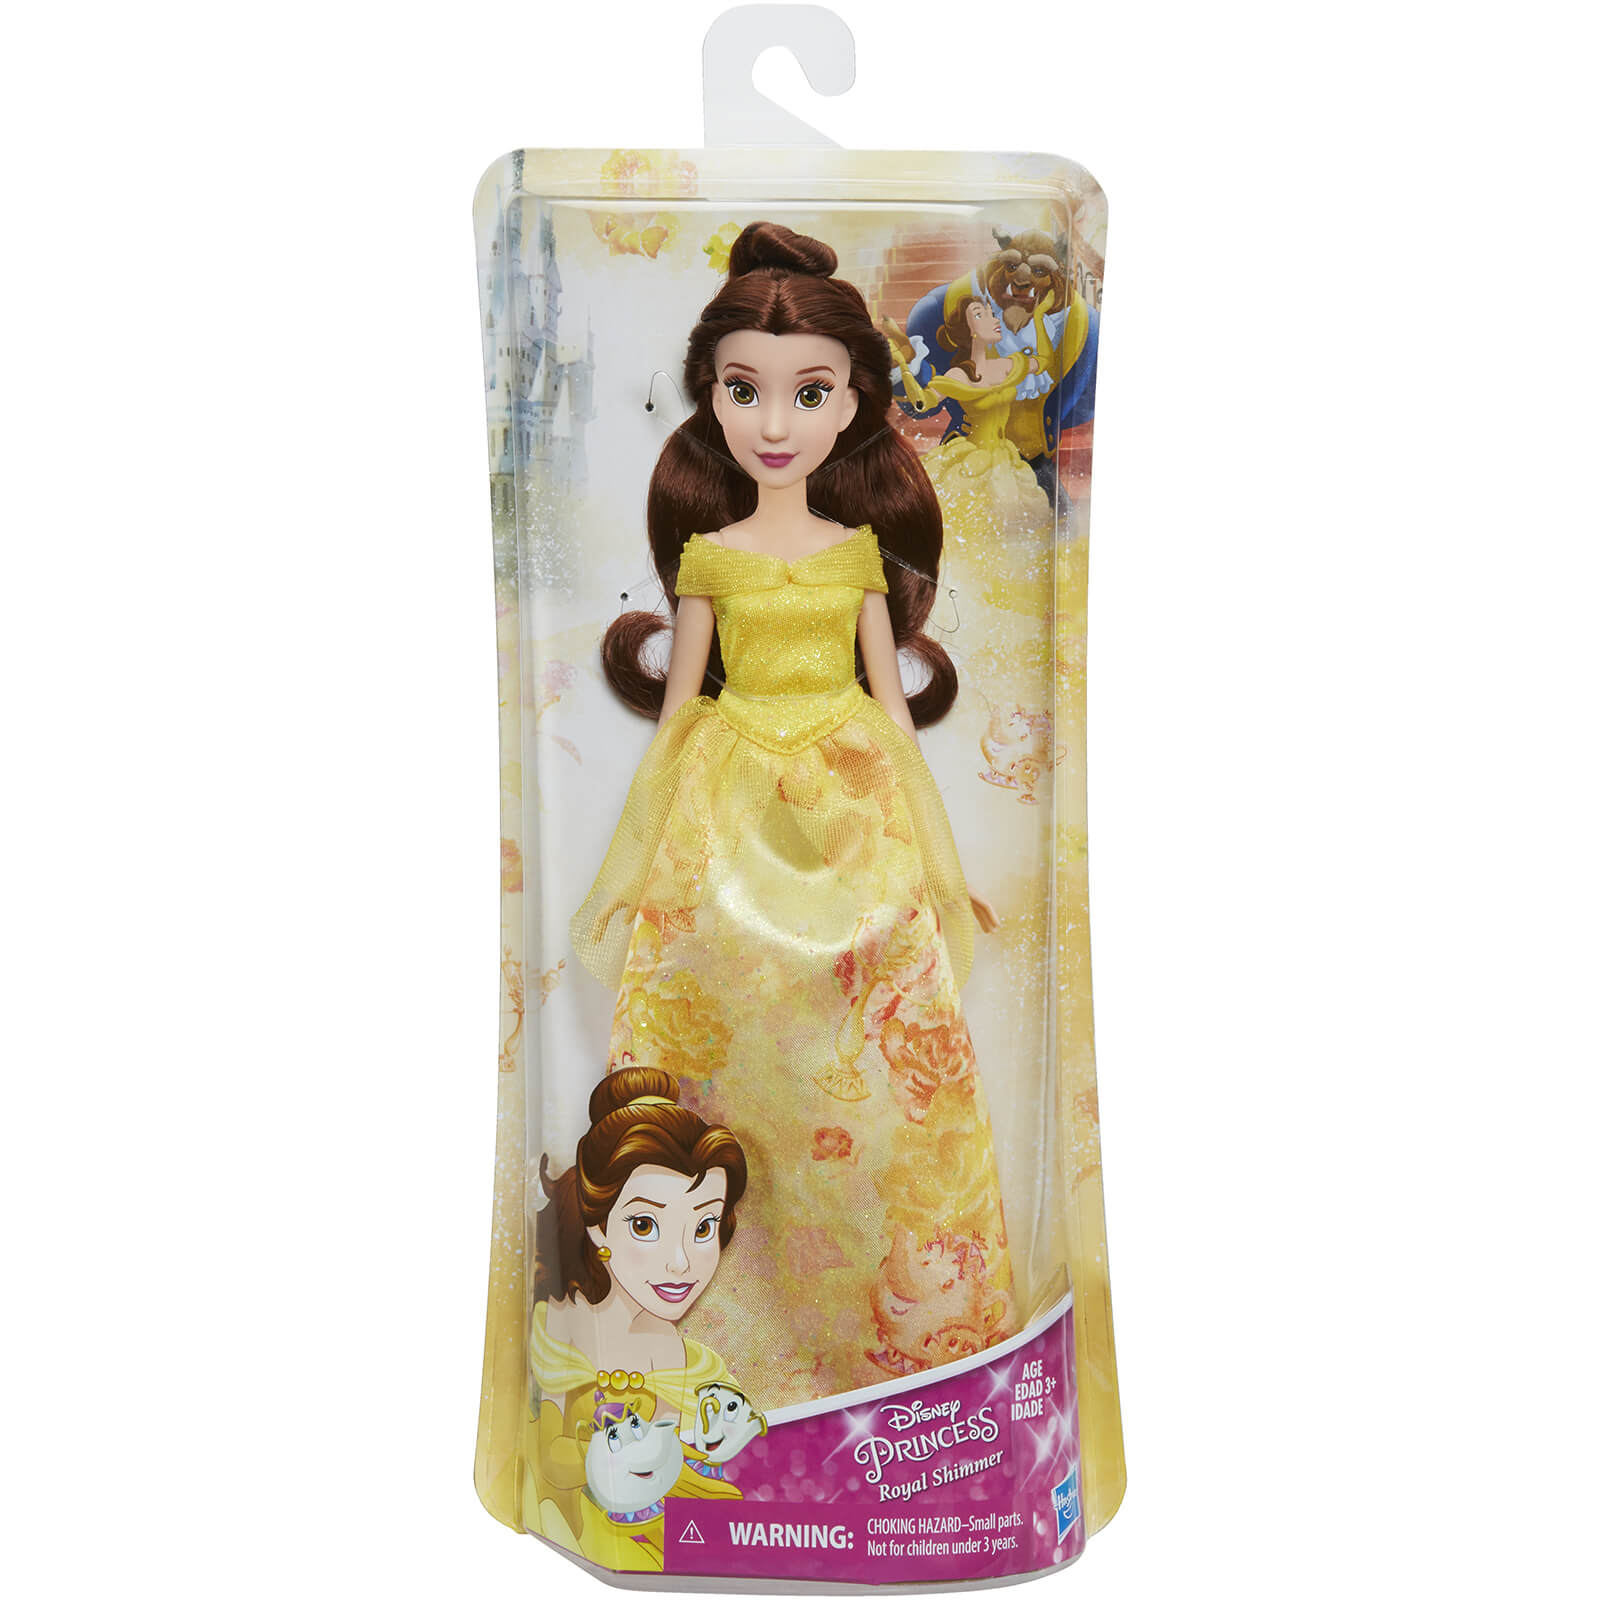 Disney Princess Belle Royal Shimmer Fashion Doll